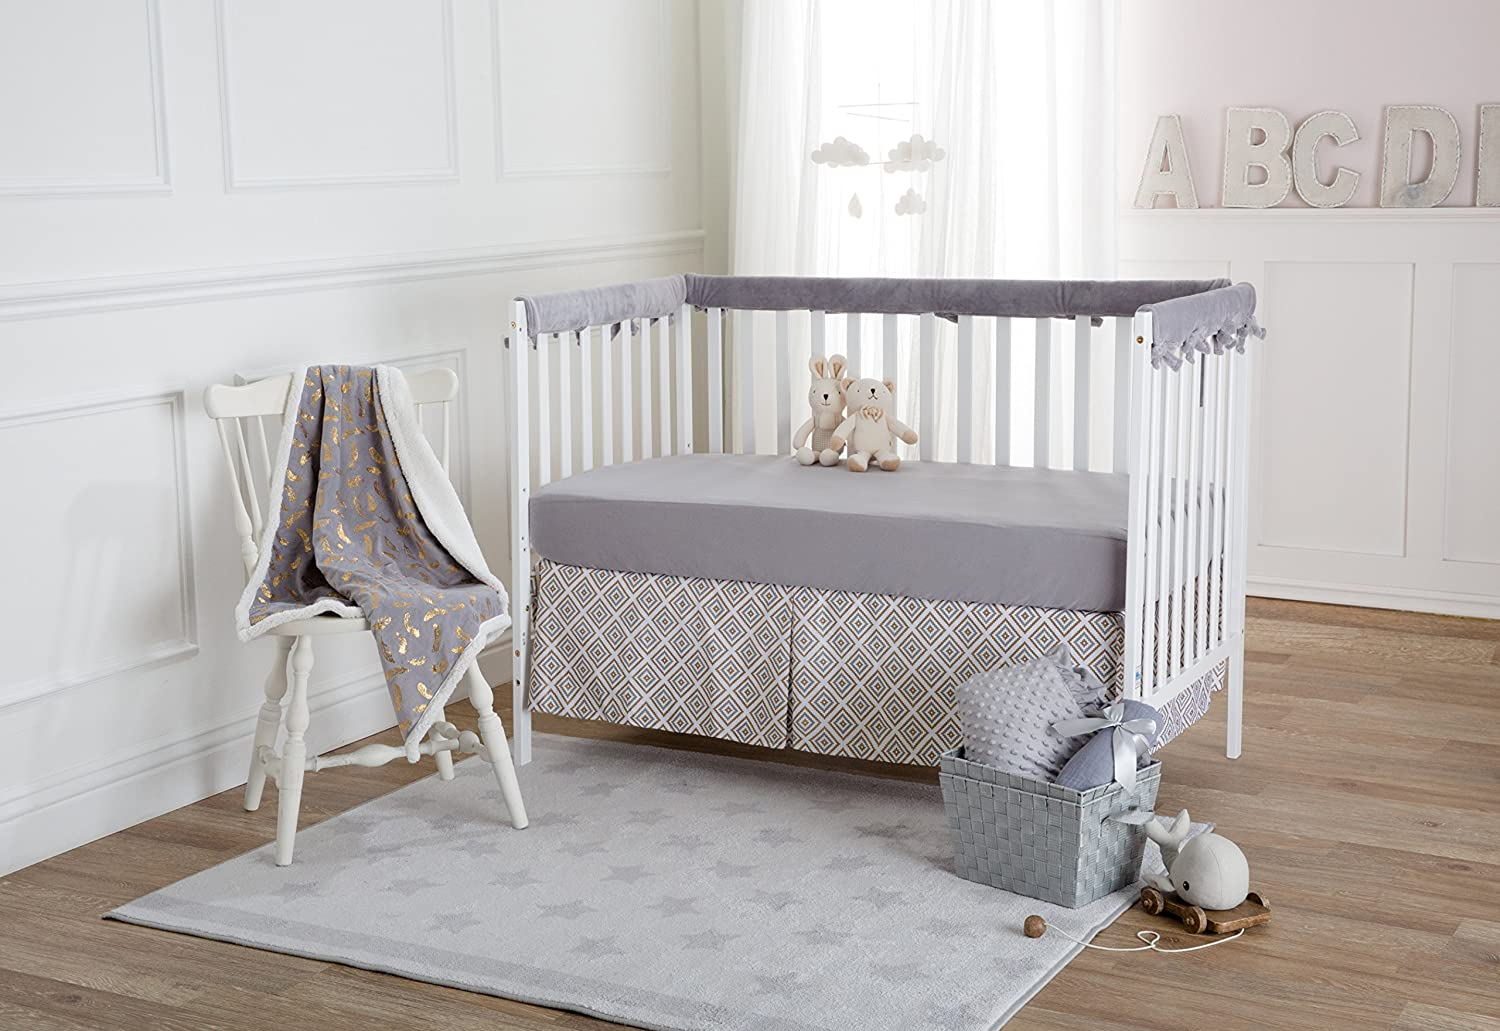 for Girls Soft Breathable American Baby Company Supreme 100/% Natural Cotton Jersey Knit Fitted Crib Sheet for Standard Crib and Toddler Mattresses Lavender